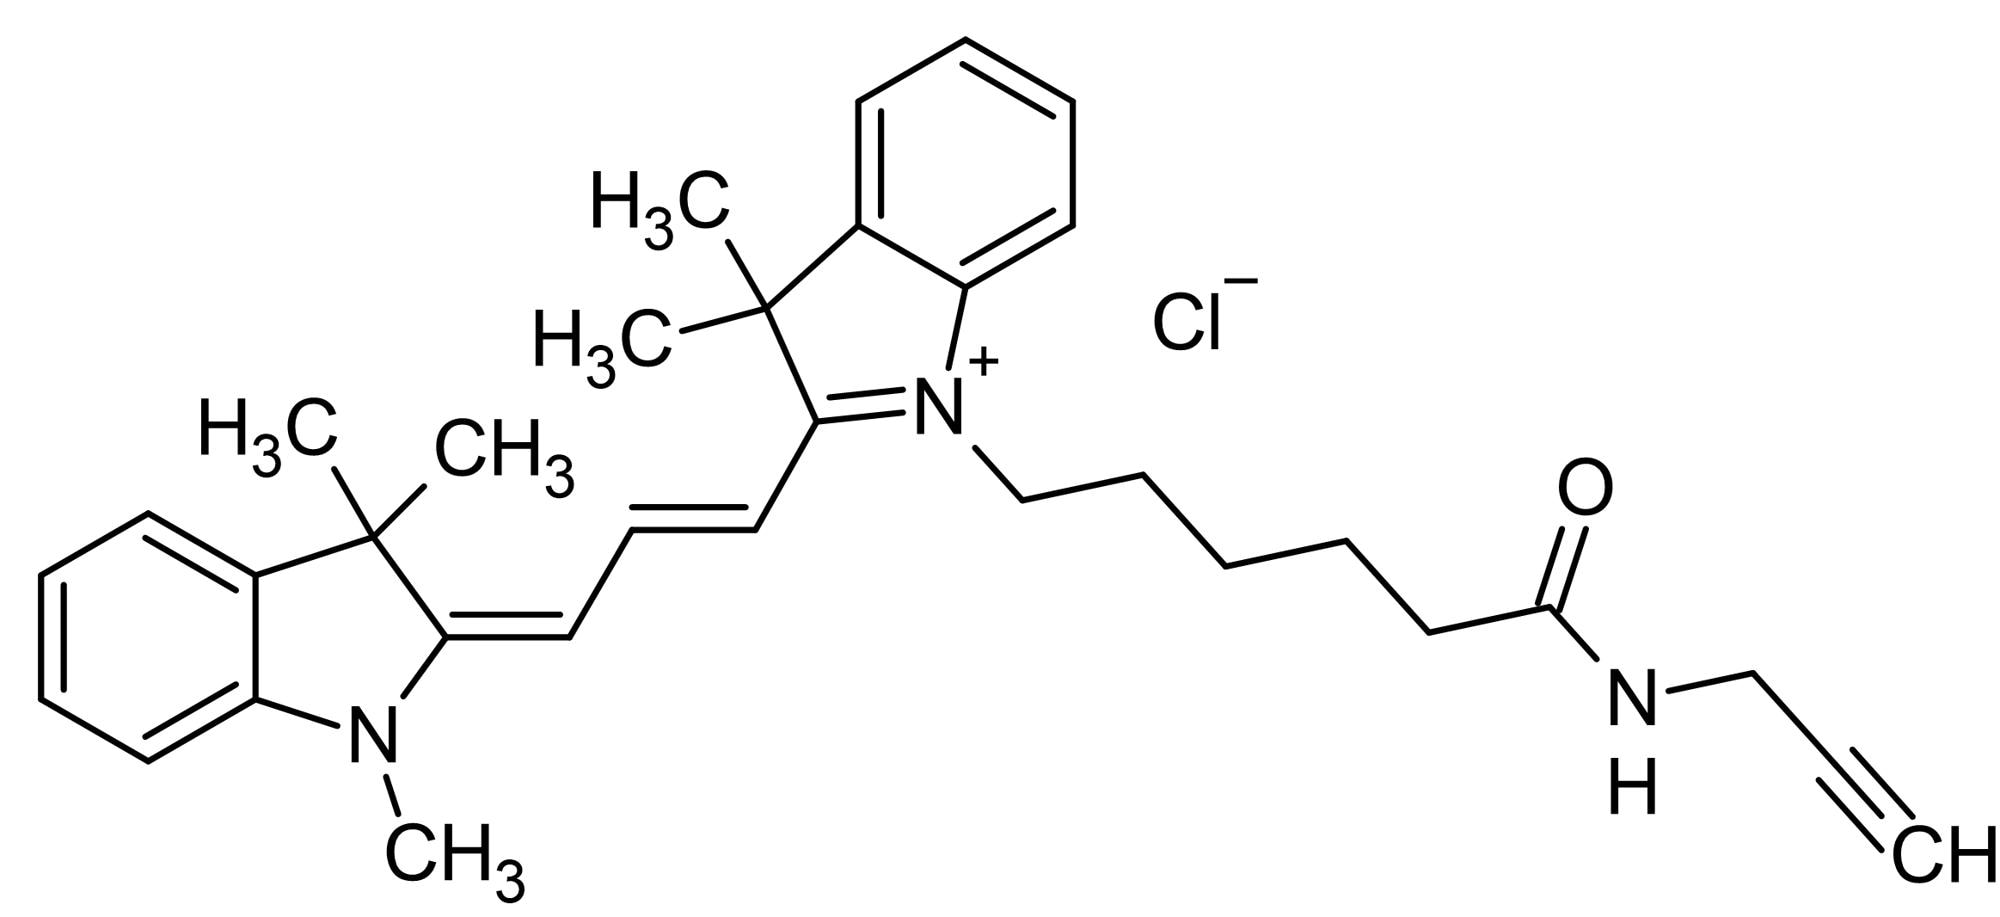 Chemical Structure - Cyanine3 alkyne, Yellow emitting fluorescent dye (ab146444)